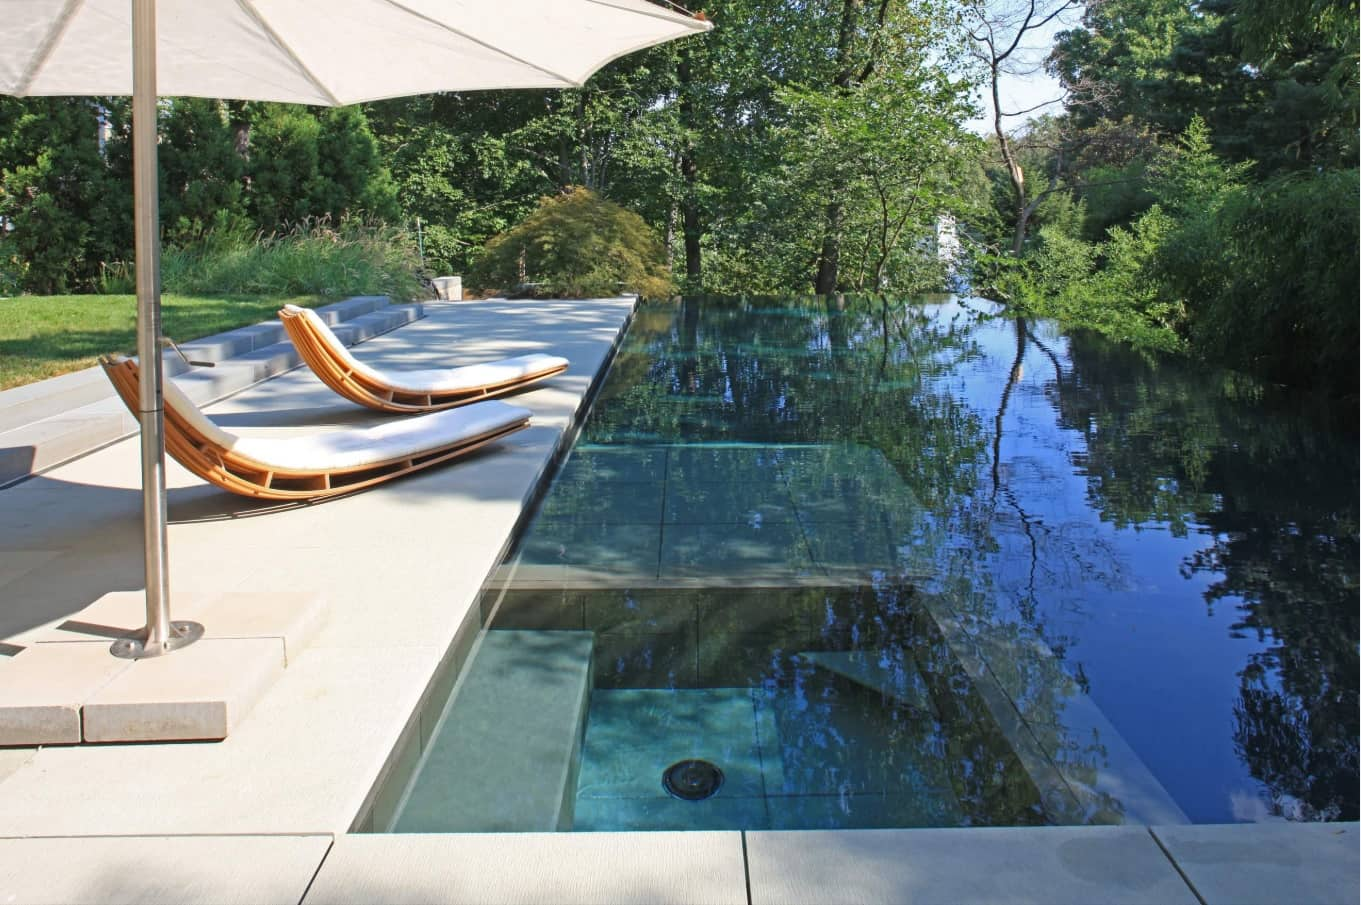 How To Maintain Your Pool Effectively. Great designed summer endless pool with crystal clean water